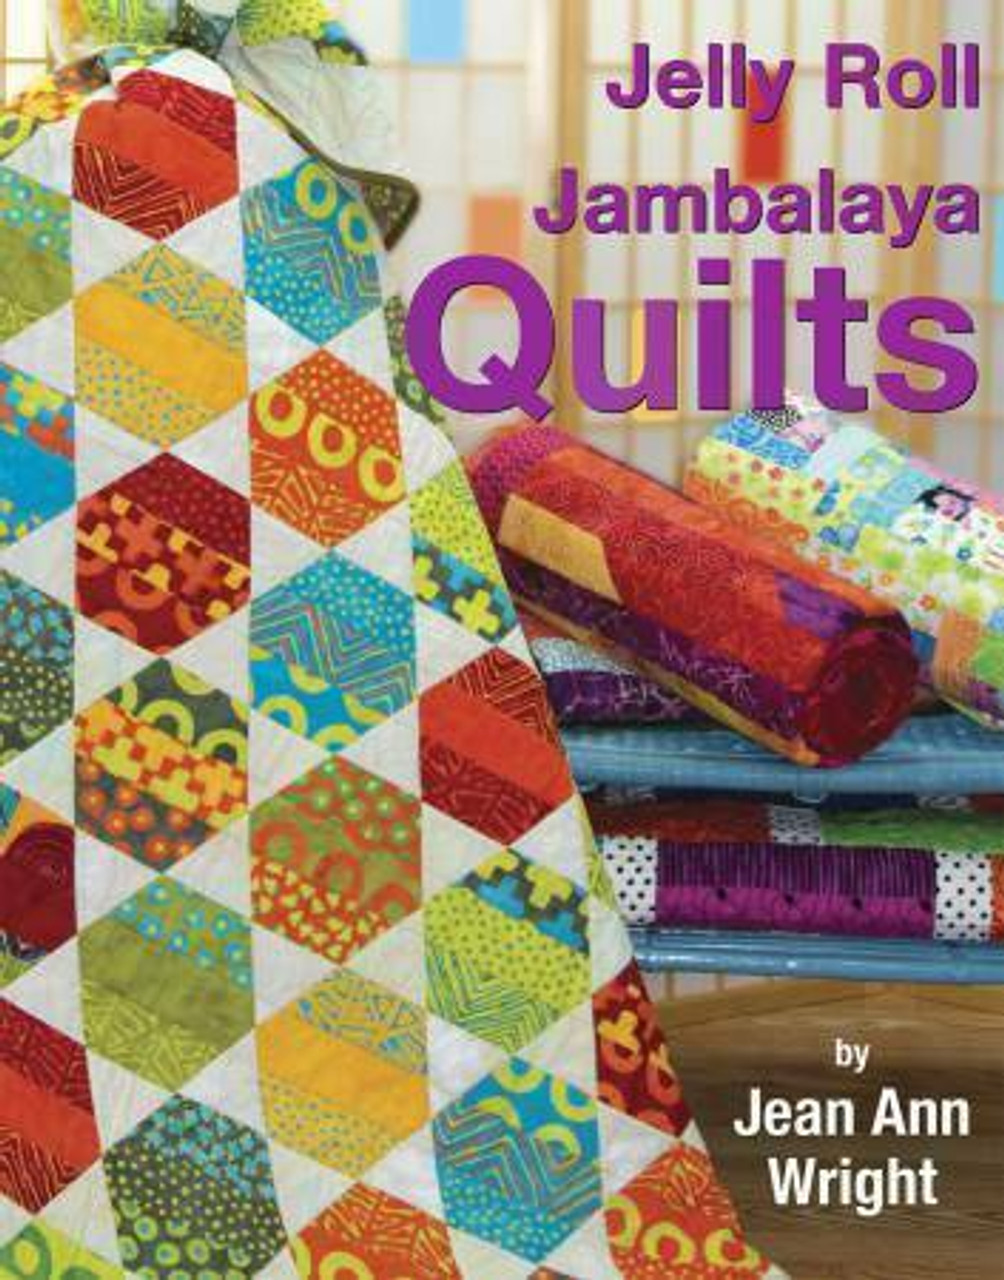 Jelly Roll Jambayla Quilts